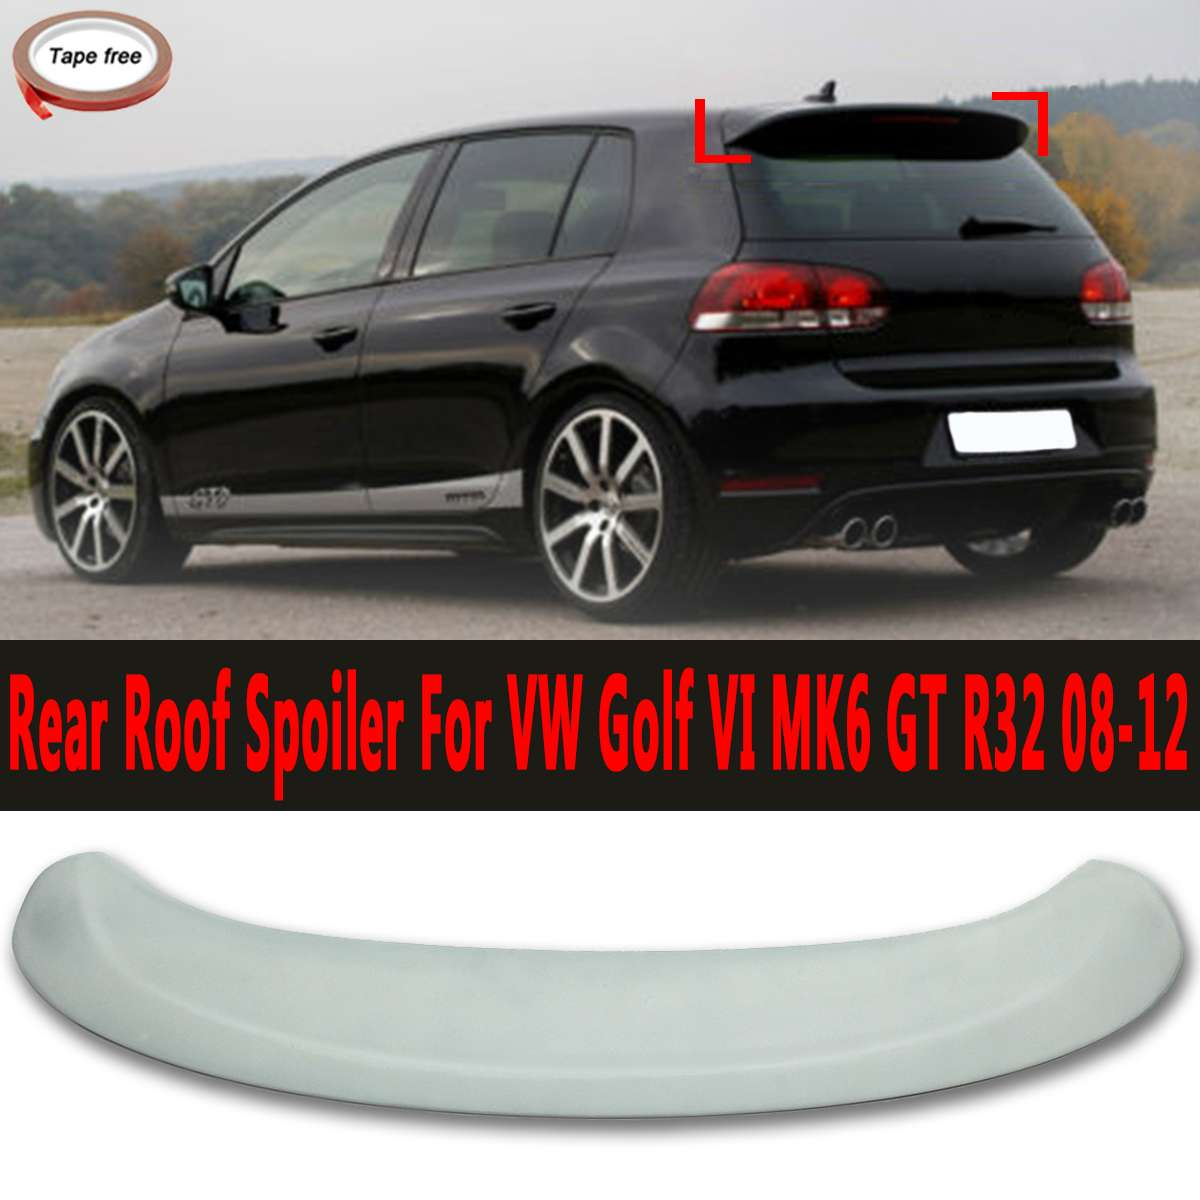 Rear Trunk Roof Spoiler Boot Lip Wing Fits For VW for Golf VI MK6 GT R32 2008-2012Rear Trunk Roof Spoiler Boot Lip Wing Fits For VW for Golf VI MK6 GT R32 2008-2012